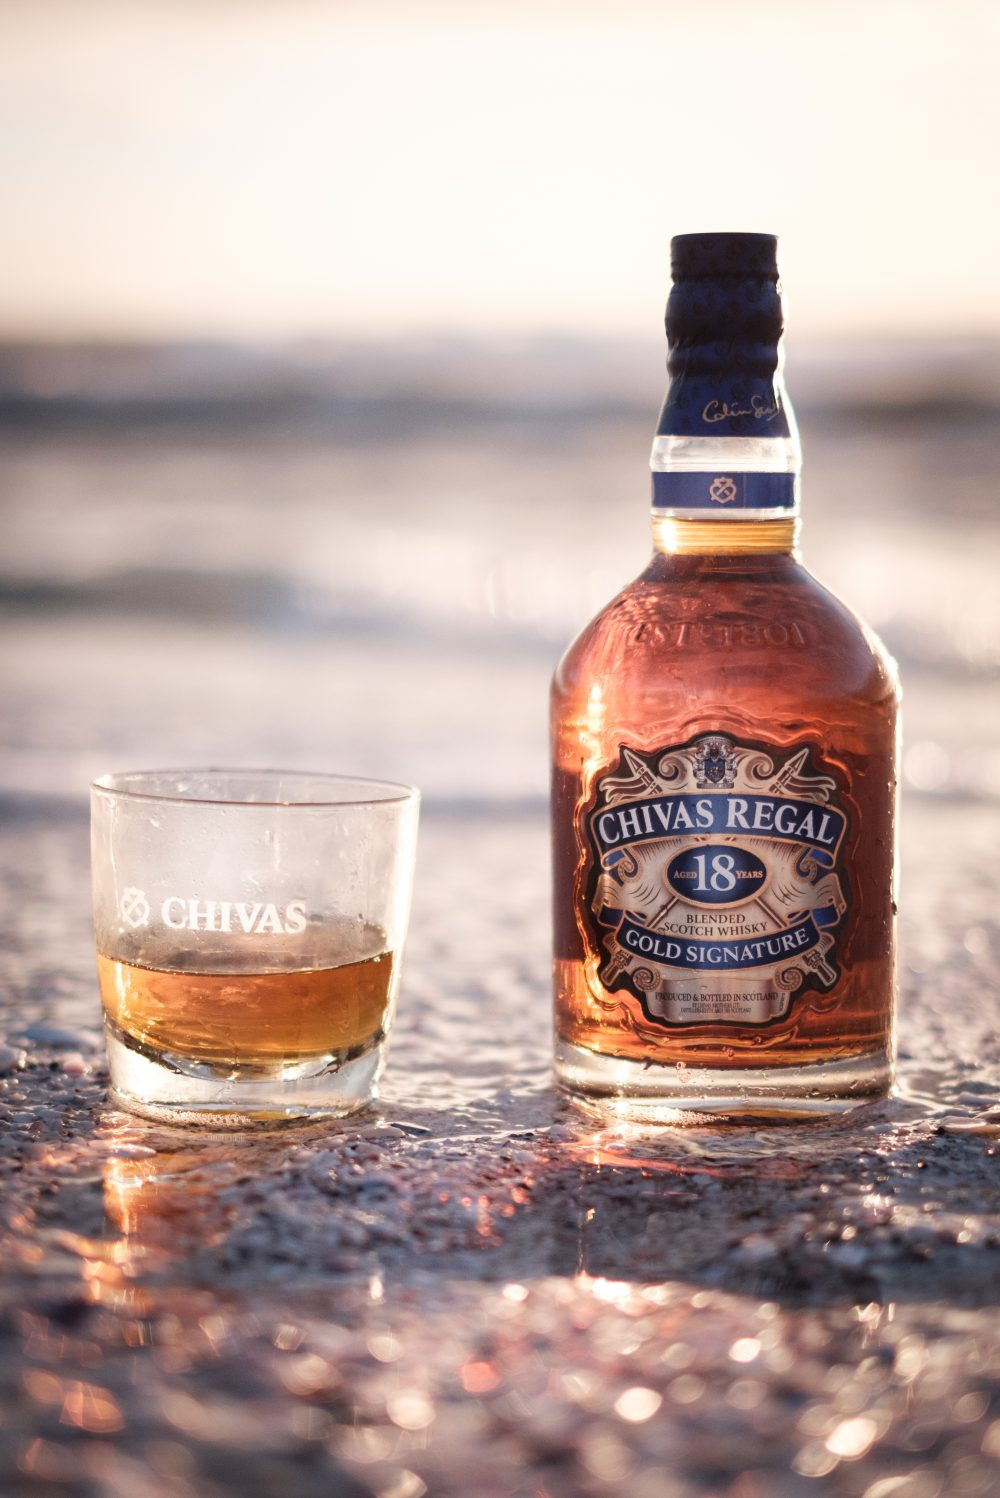 Bottle of Chivas and whiskey glass on the beach, shot by influencer Zerletti